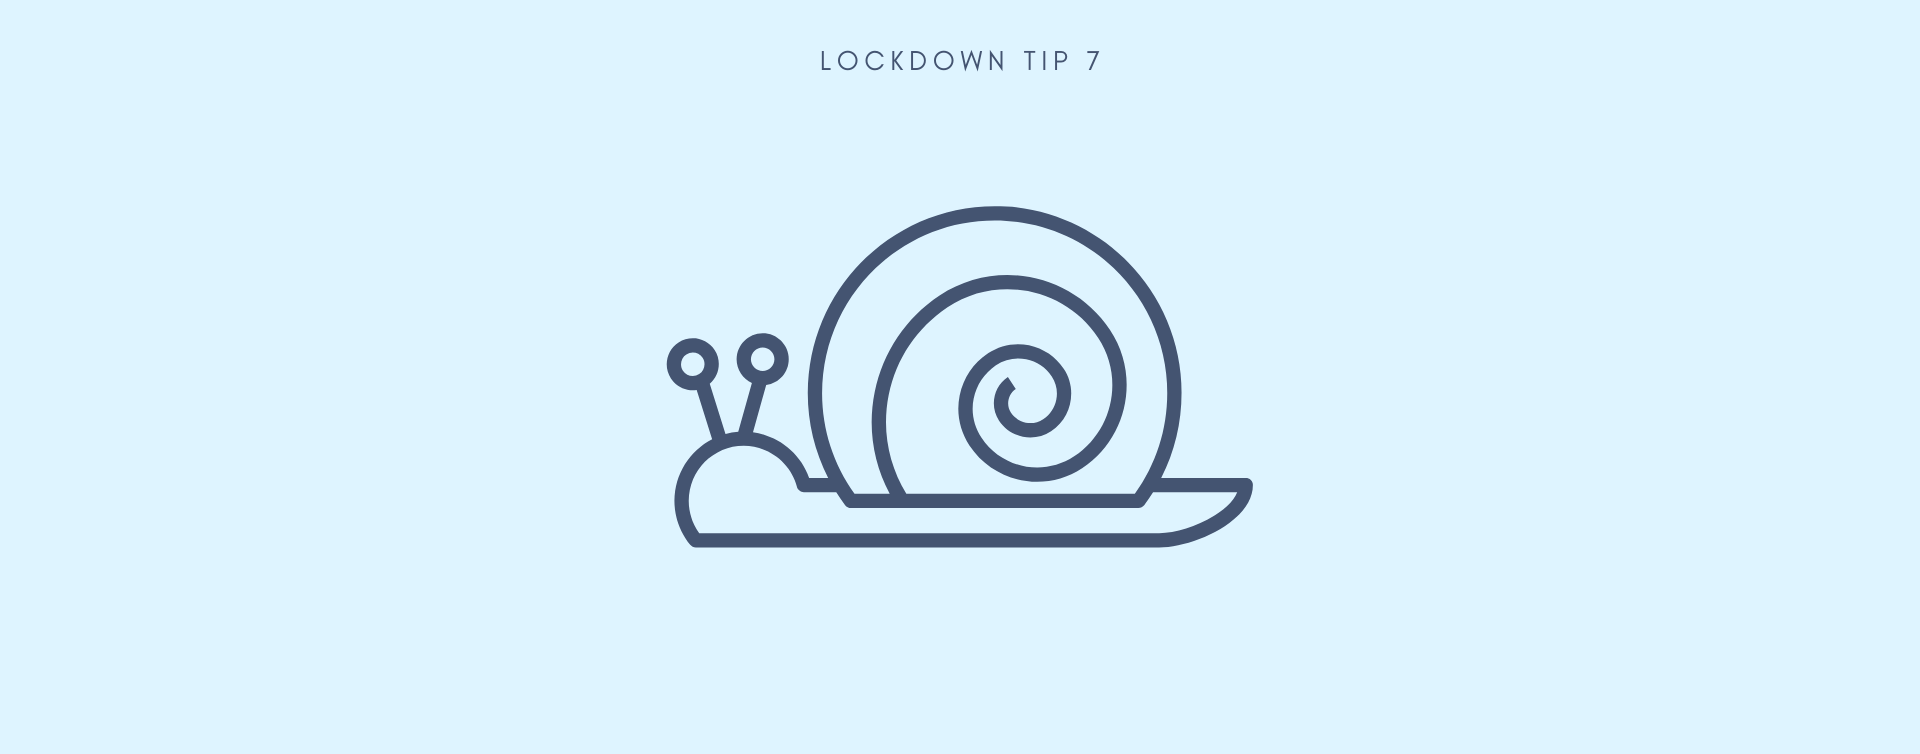 MCSA Lockdown Tip 7